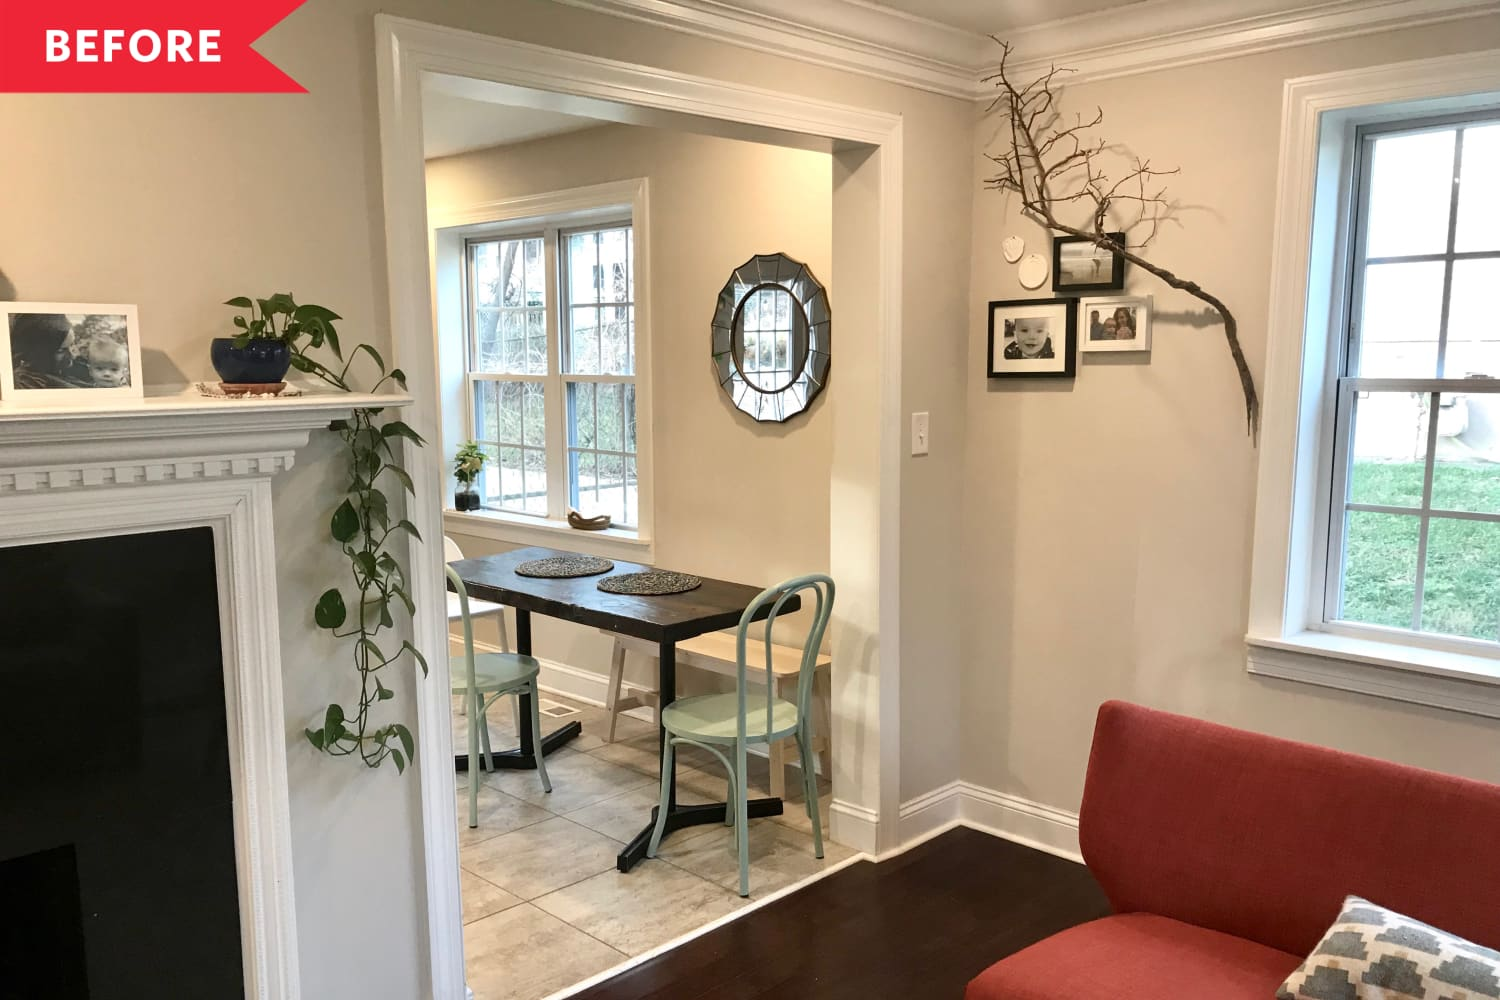 Before and After: An $1,800 Redo Smartly Maximizes Space in This Tiny Dining Area